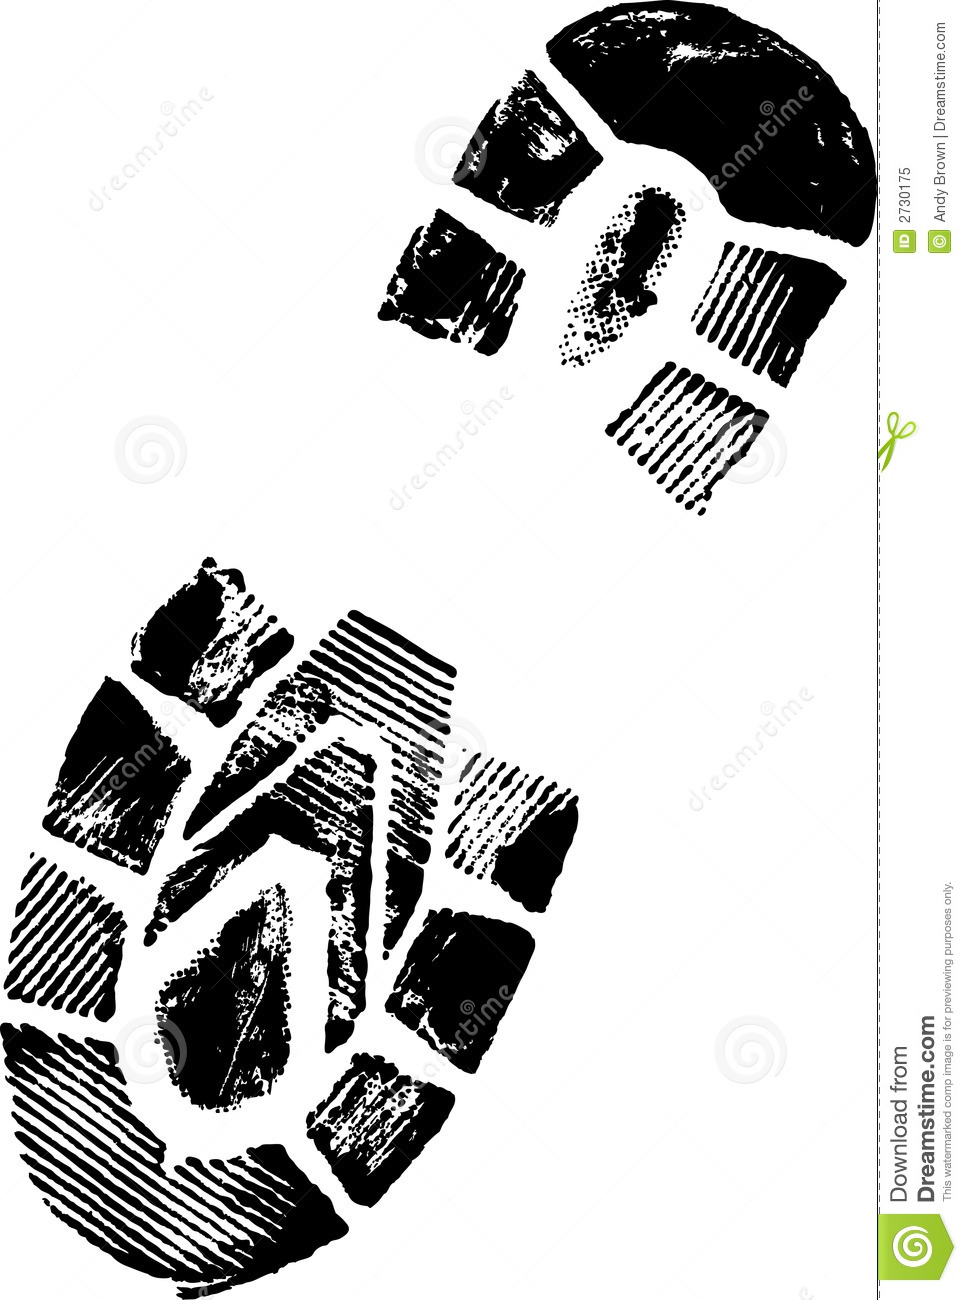 shoe print stock vector illustration of privacy swirls